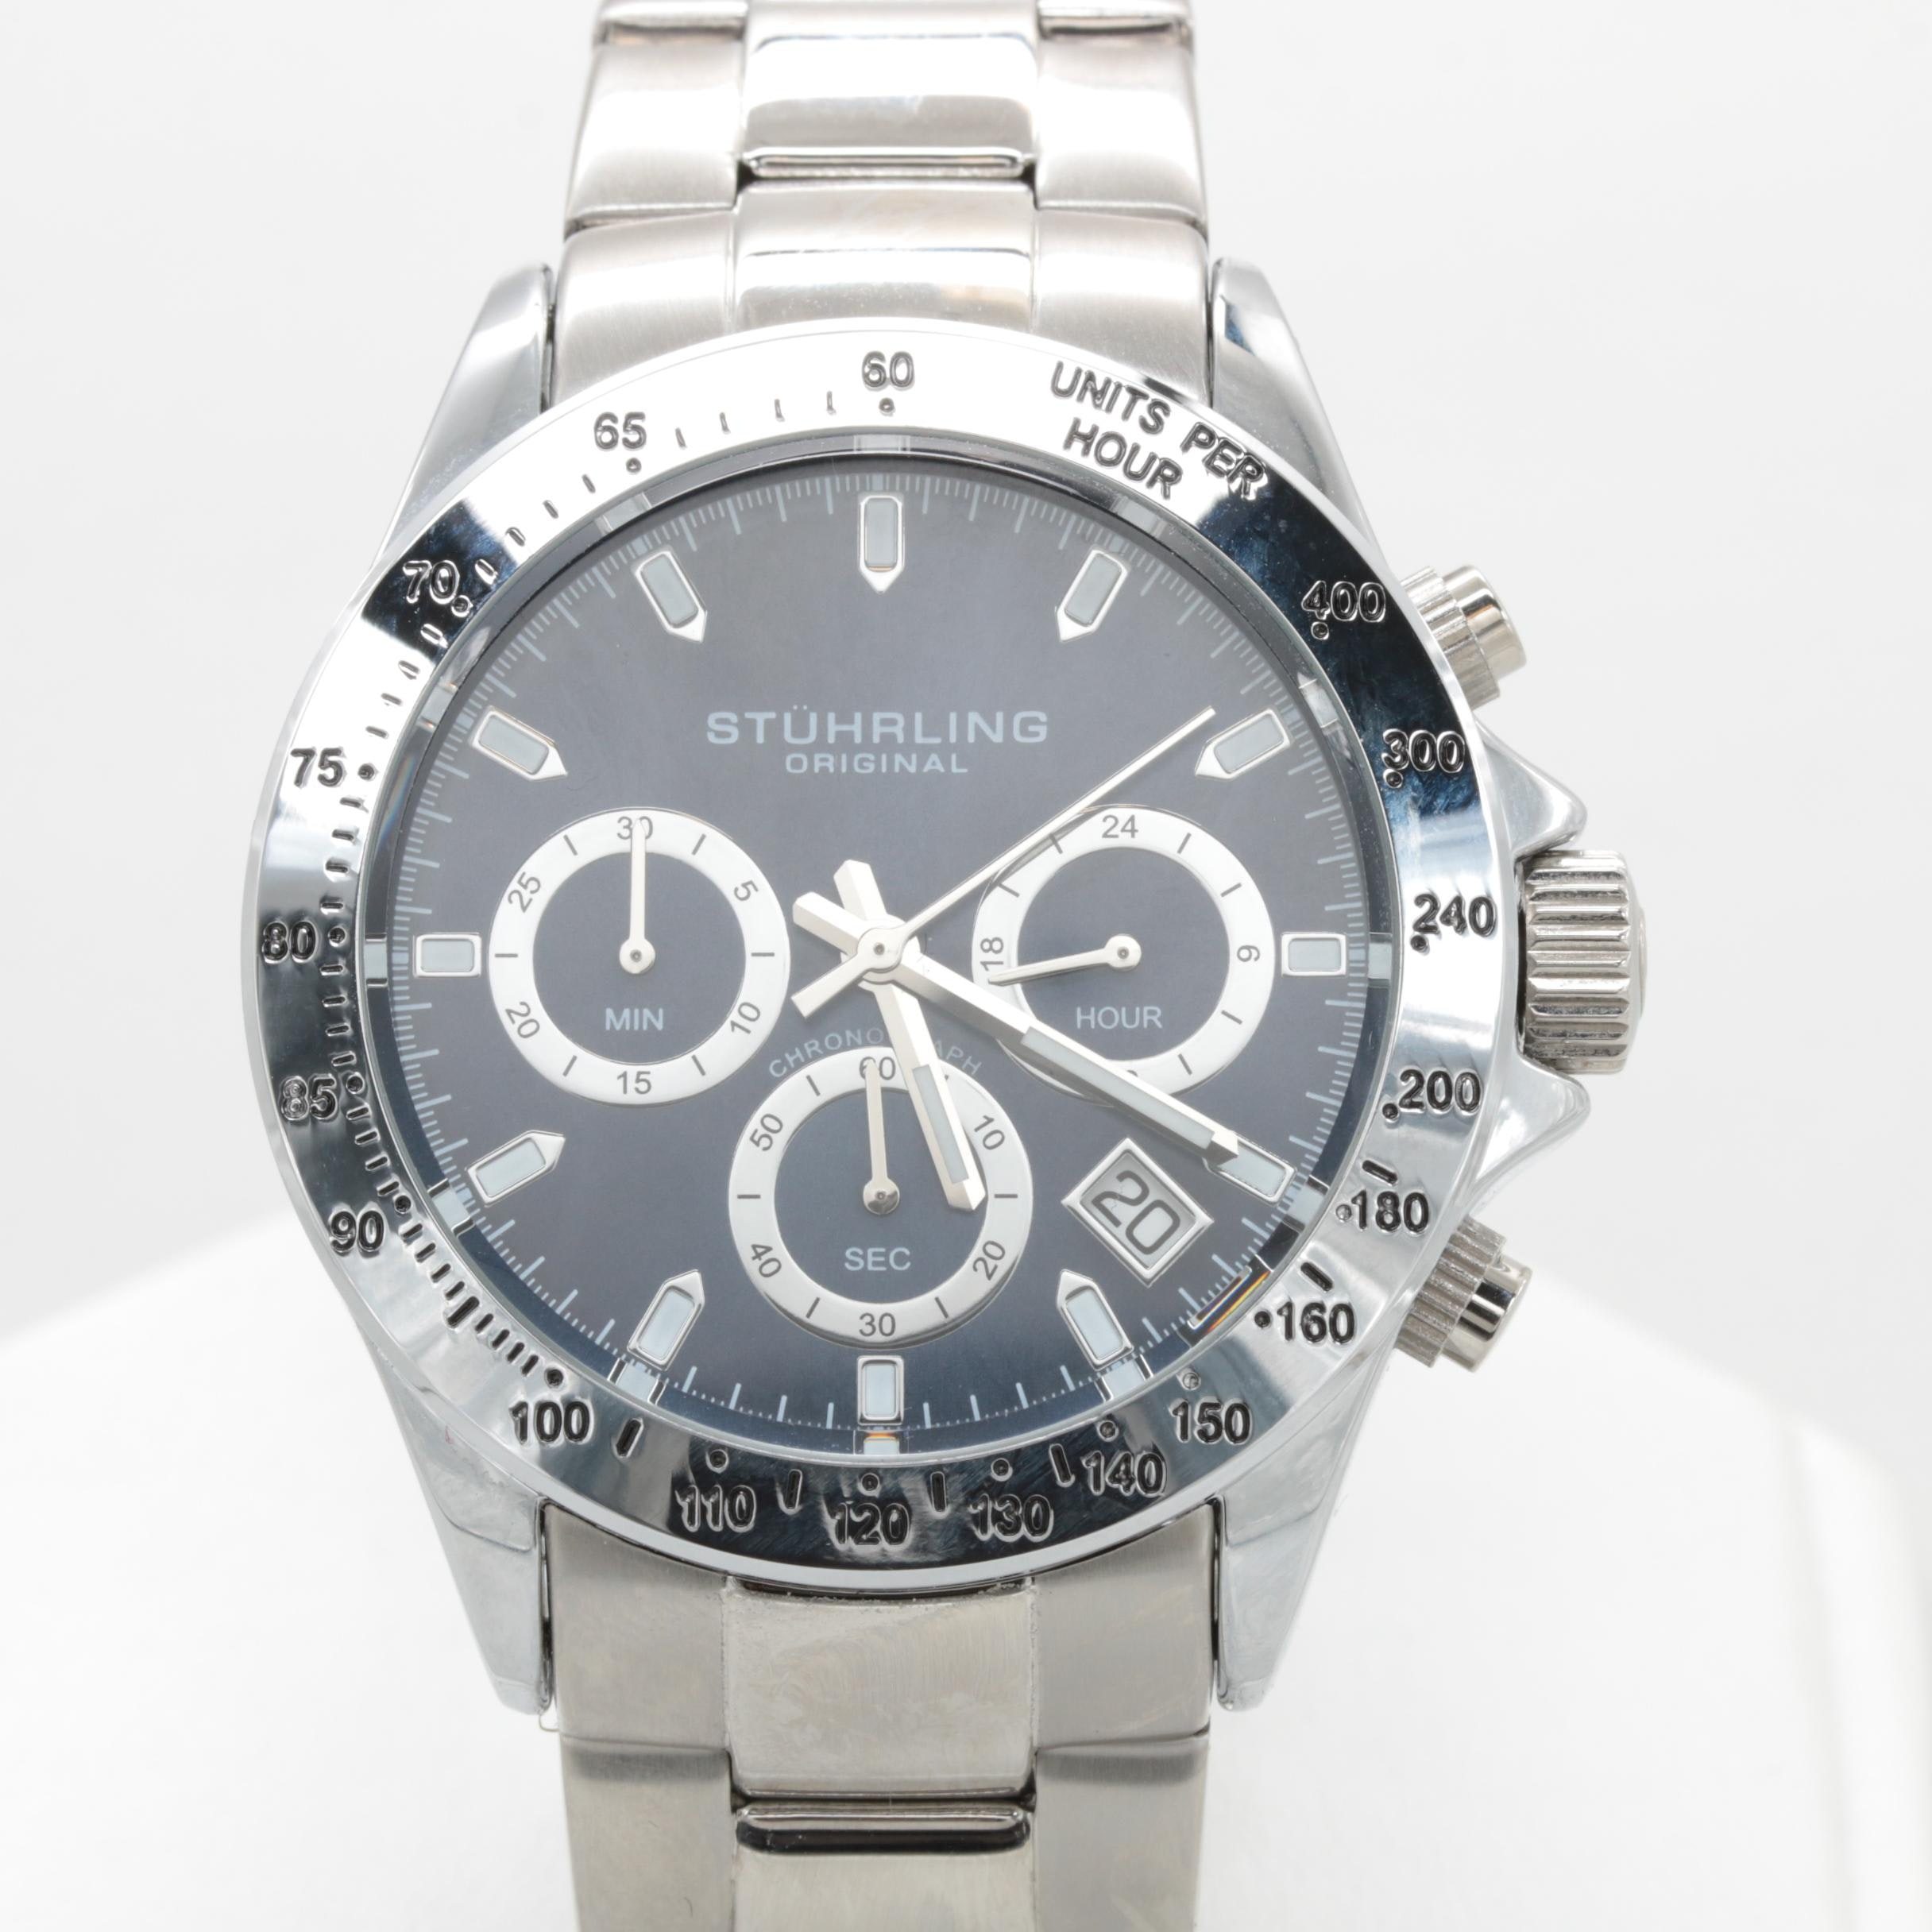 Stuhrling Stainless Steel Blue Dial Chronograph Wristwatch with Date